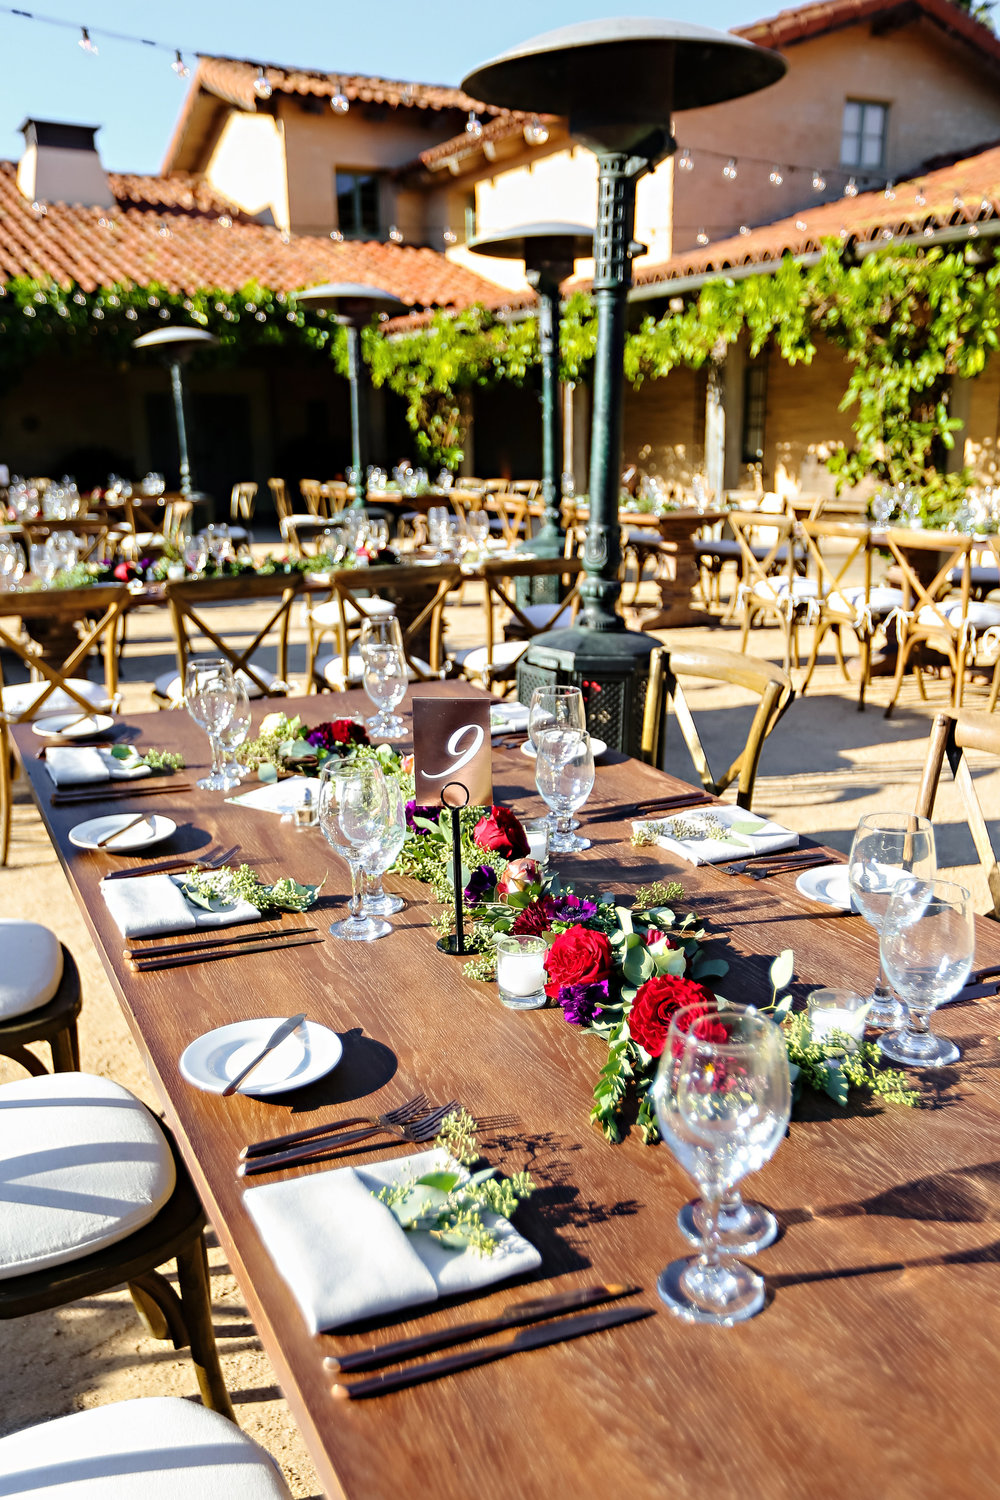 Specialty Farm Dinner Tables and Vineyard Chairs